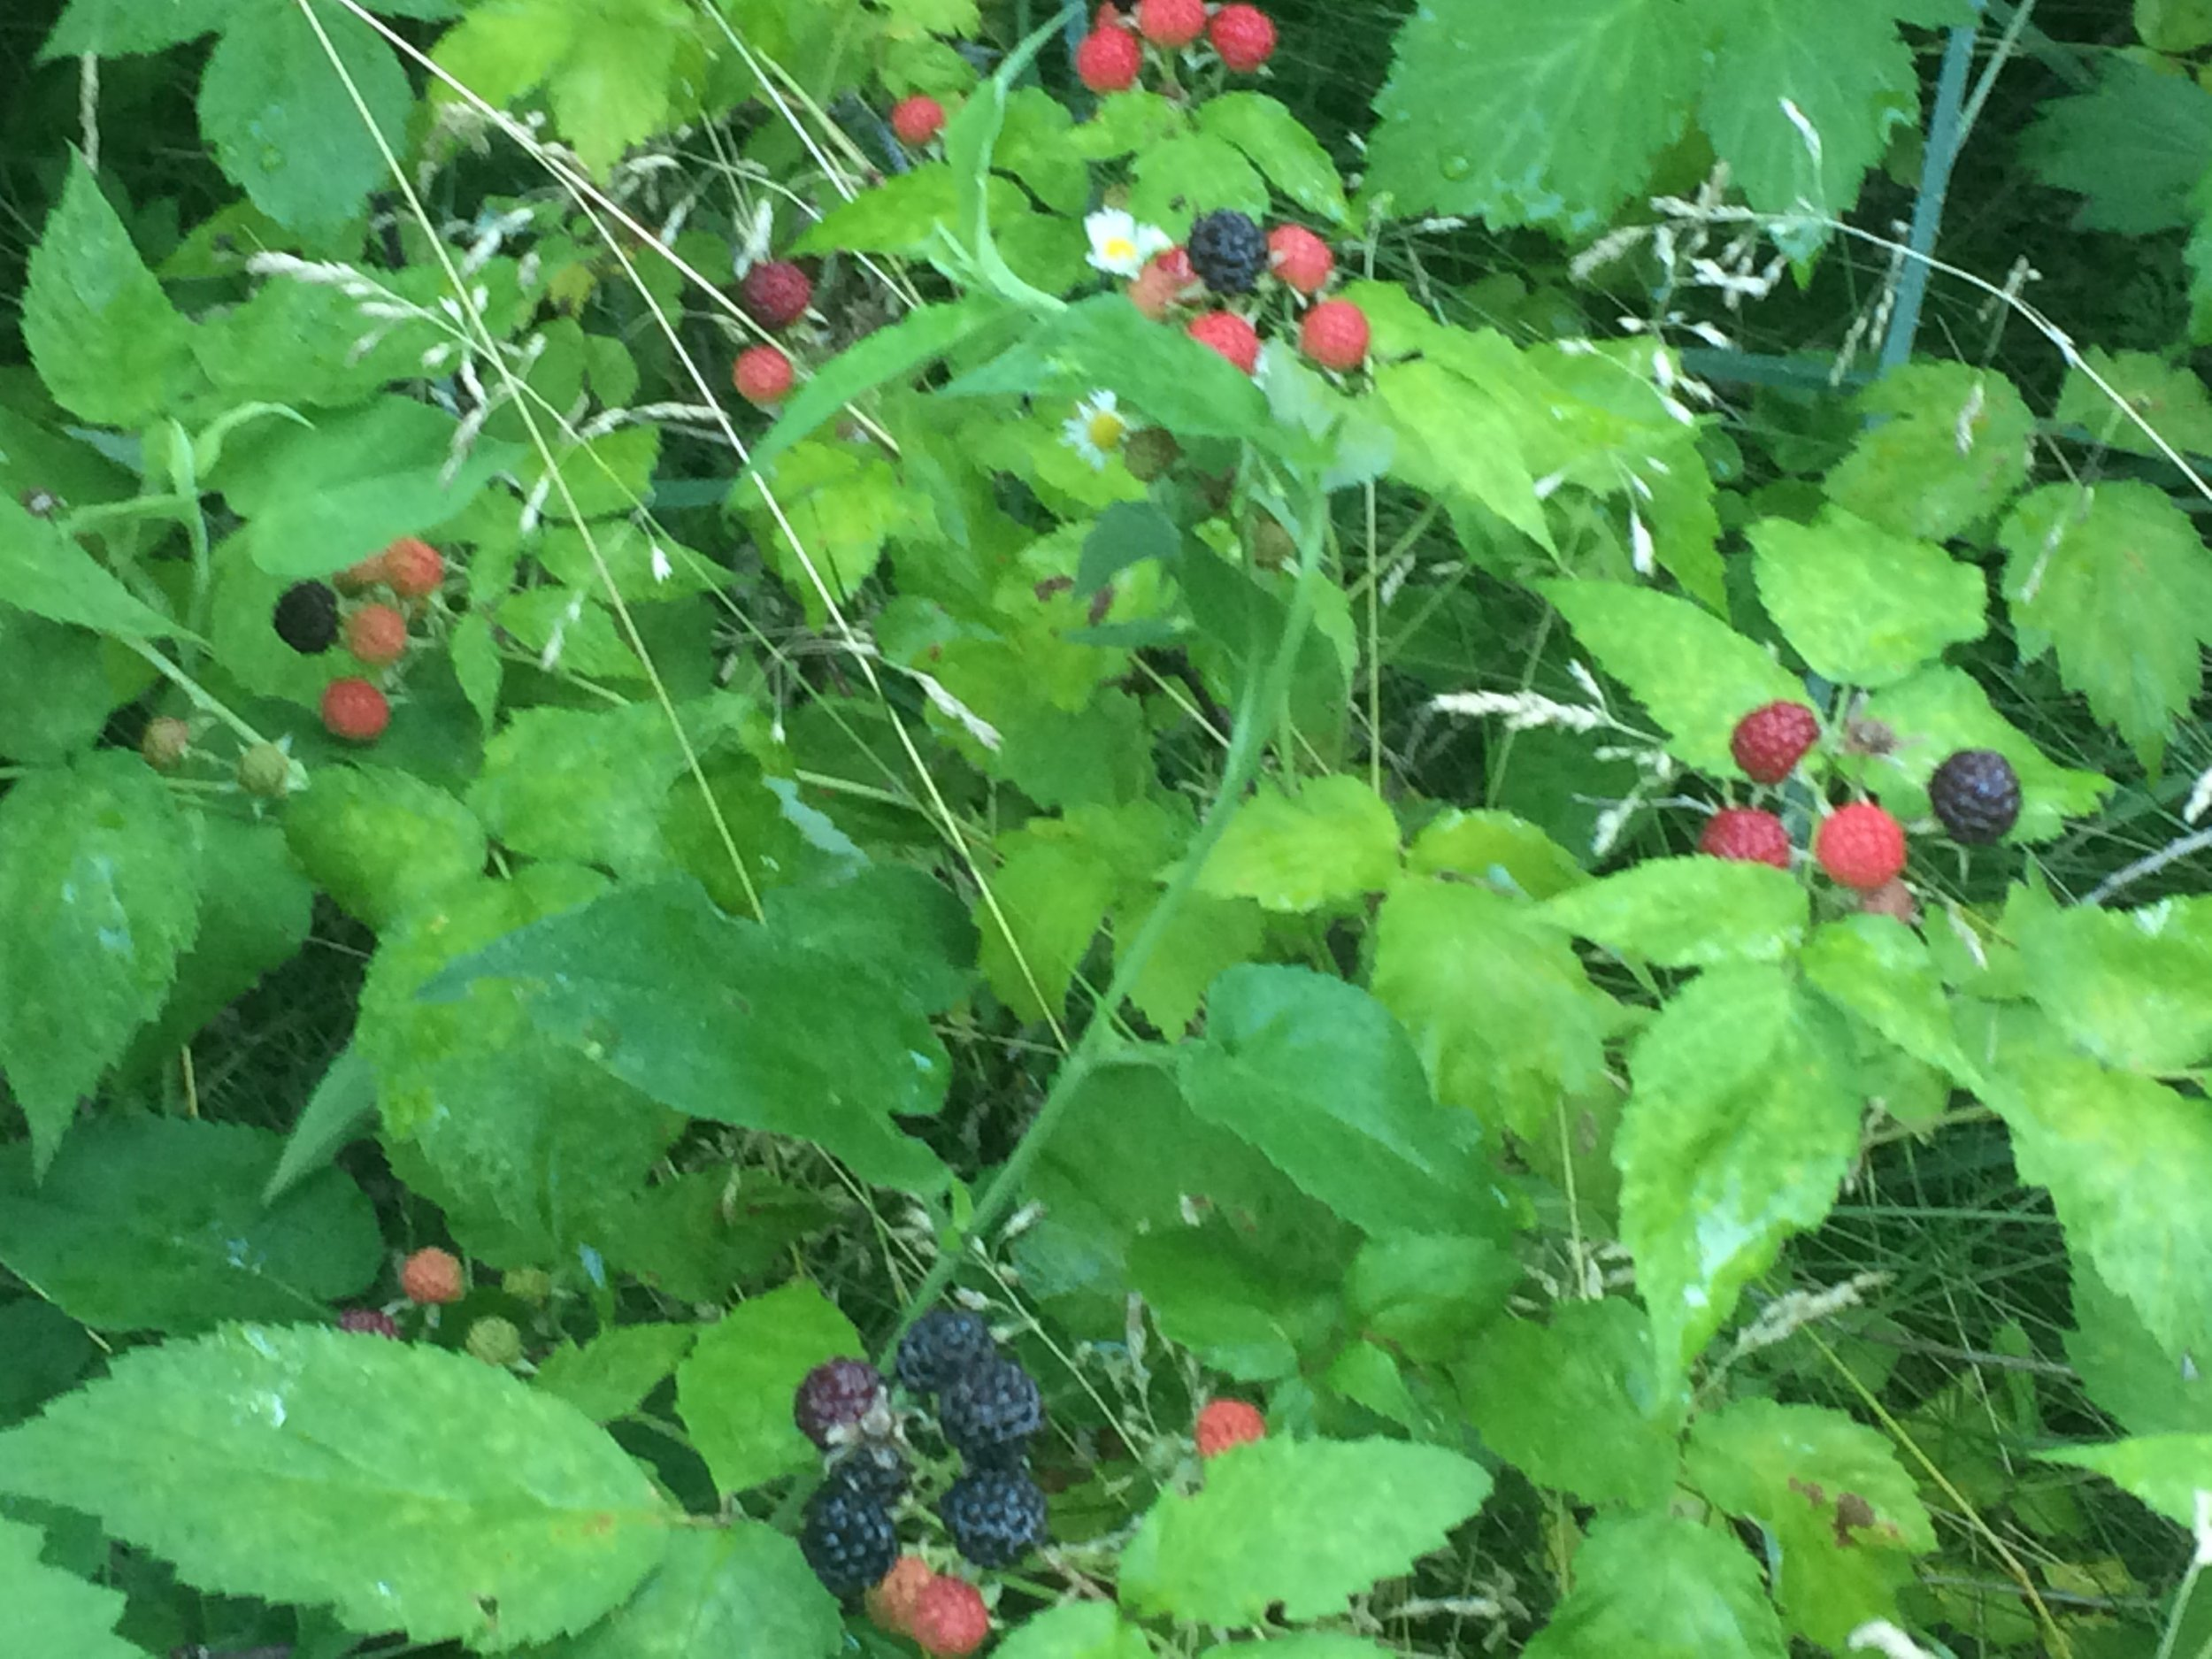 At the top of this bramble, there is one ripe berry in a pink cluster.  At the bottom, a cluster of much more ripened berries.